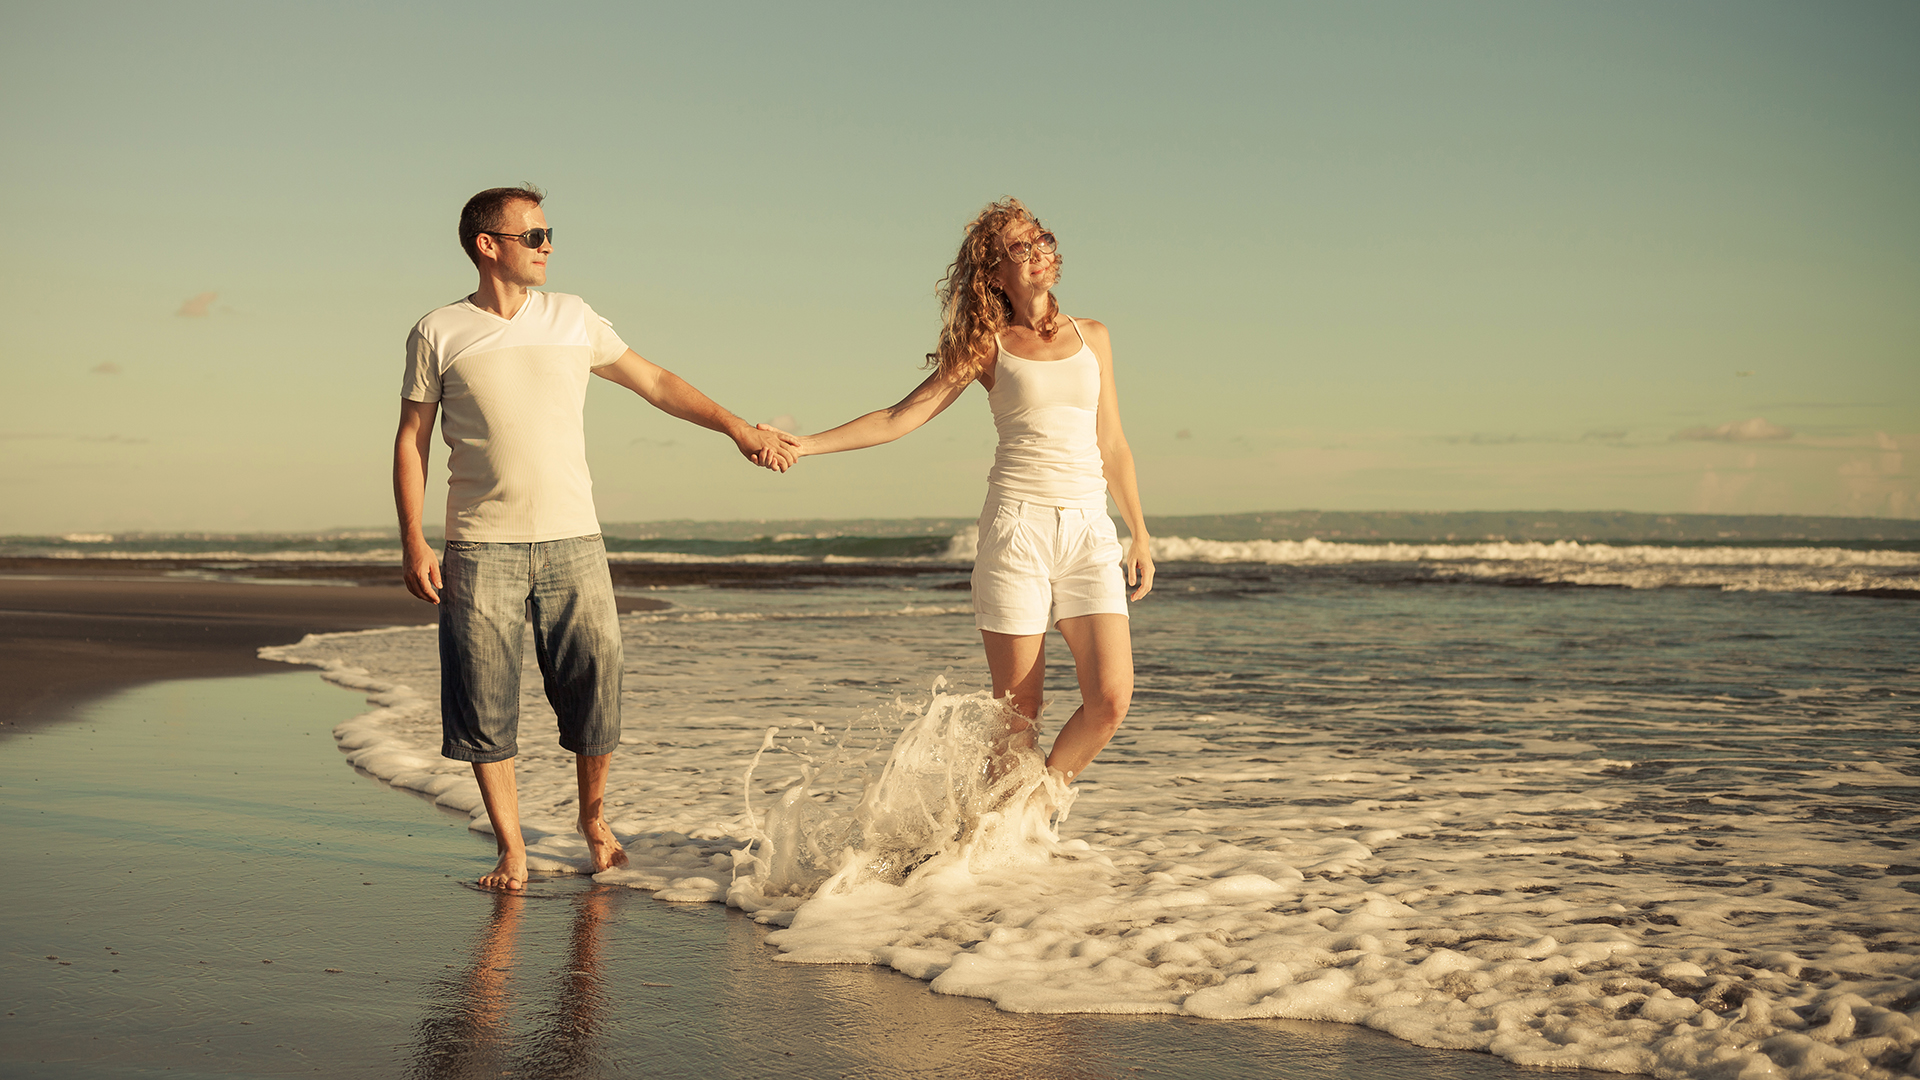 Romantic happy  man and woman couple walking on a  beach